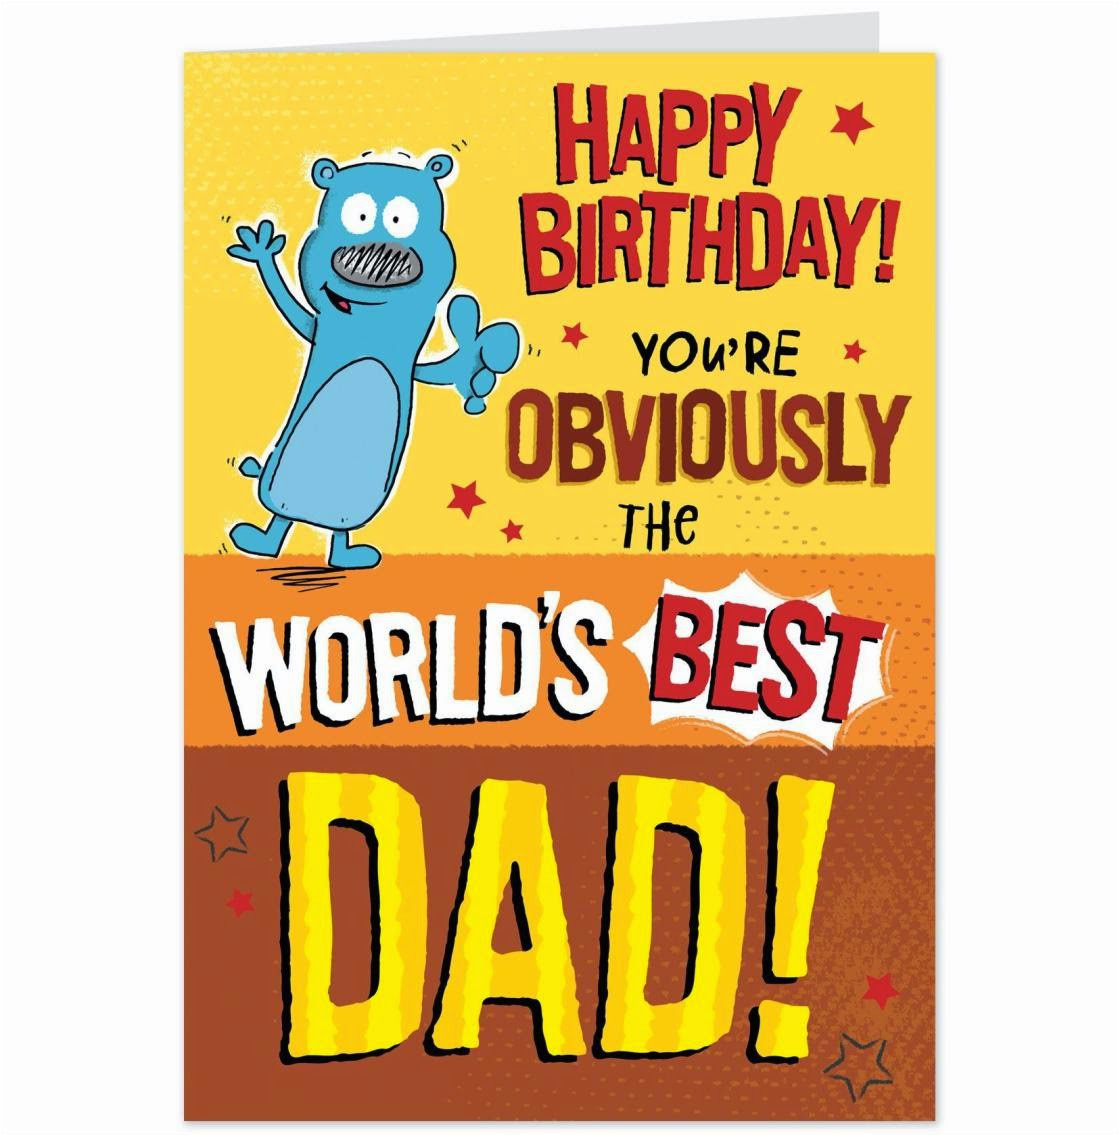 birthday images for dad